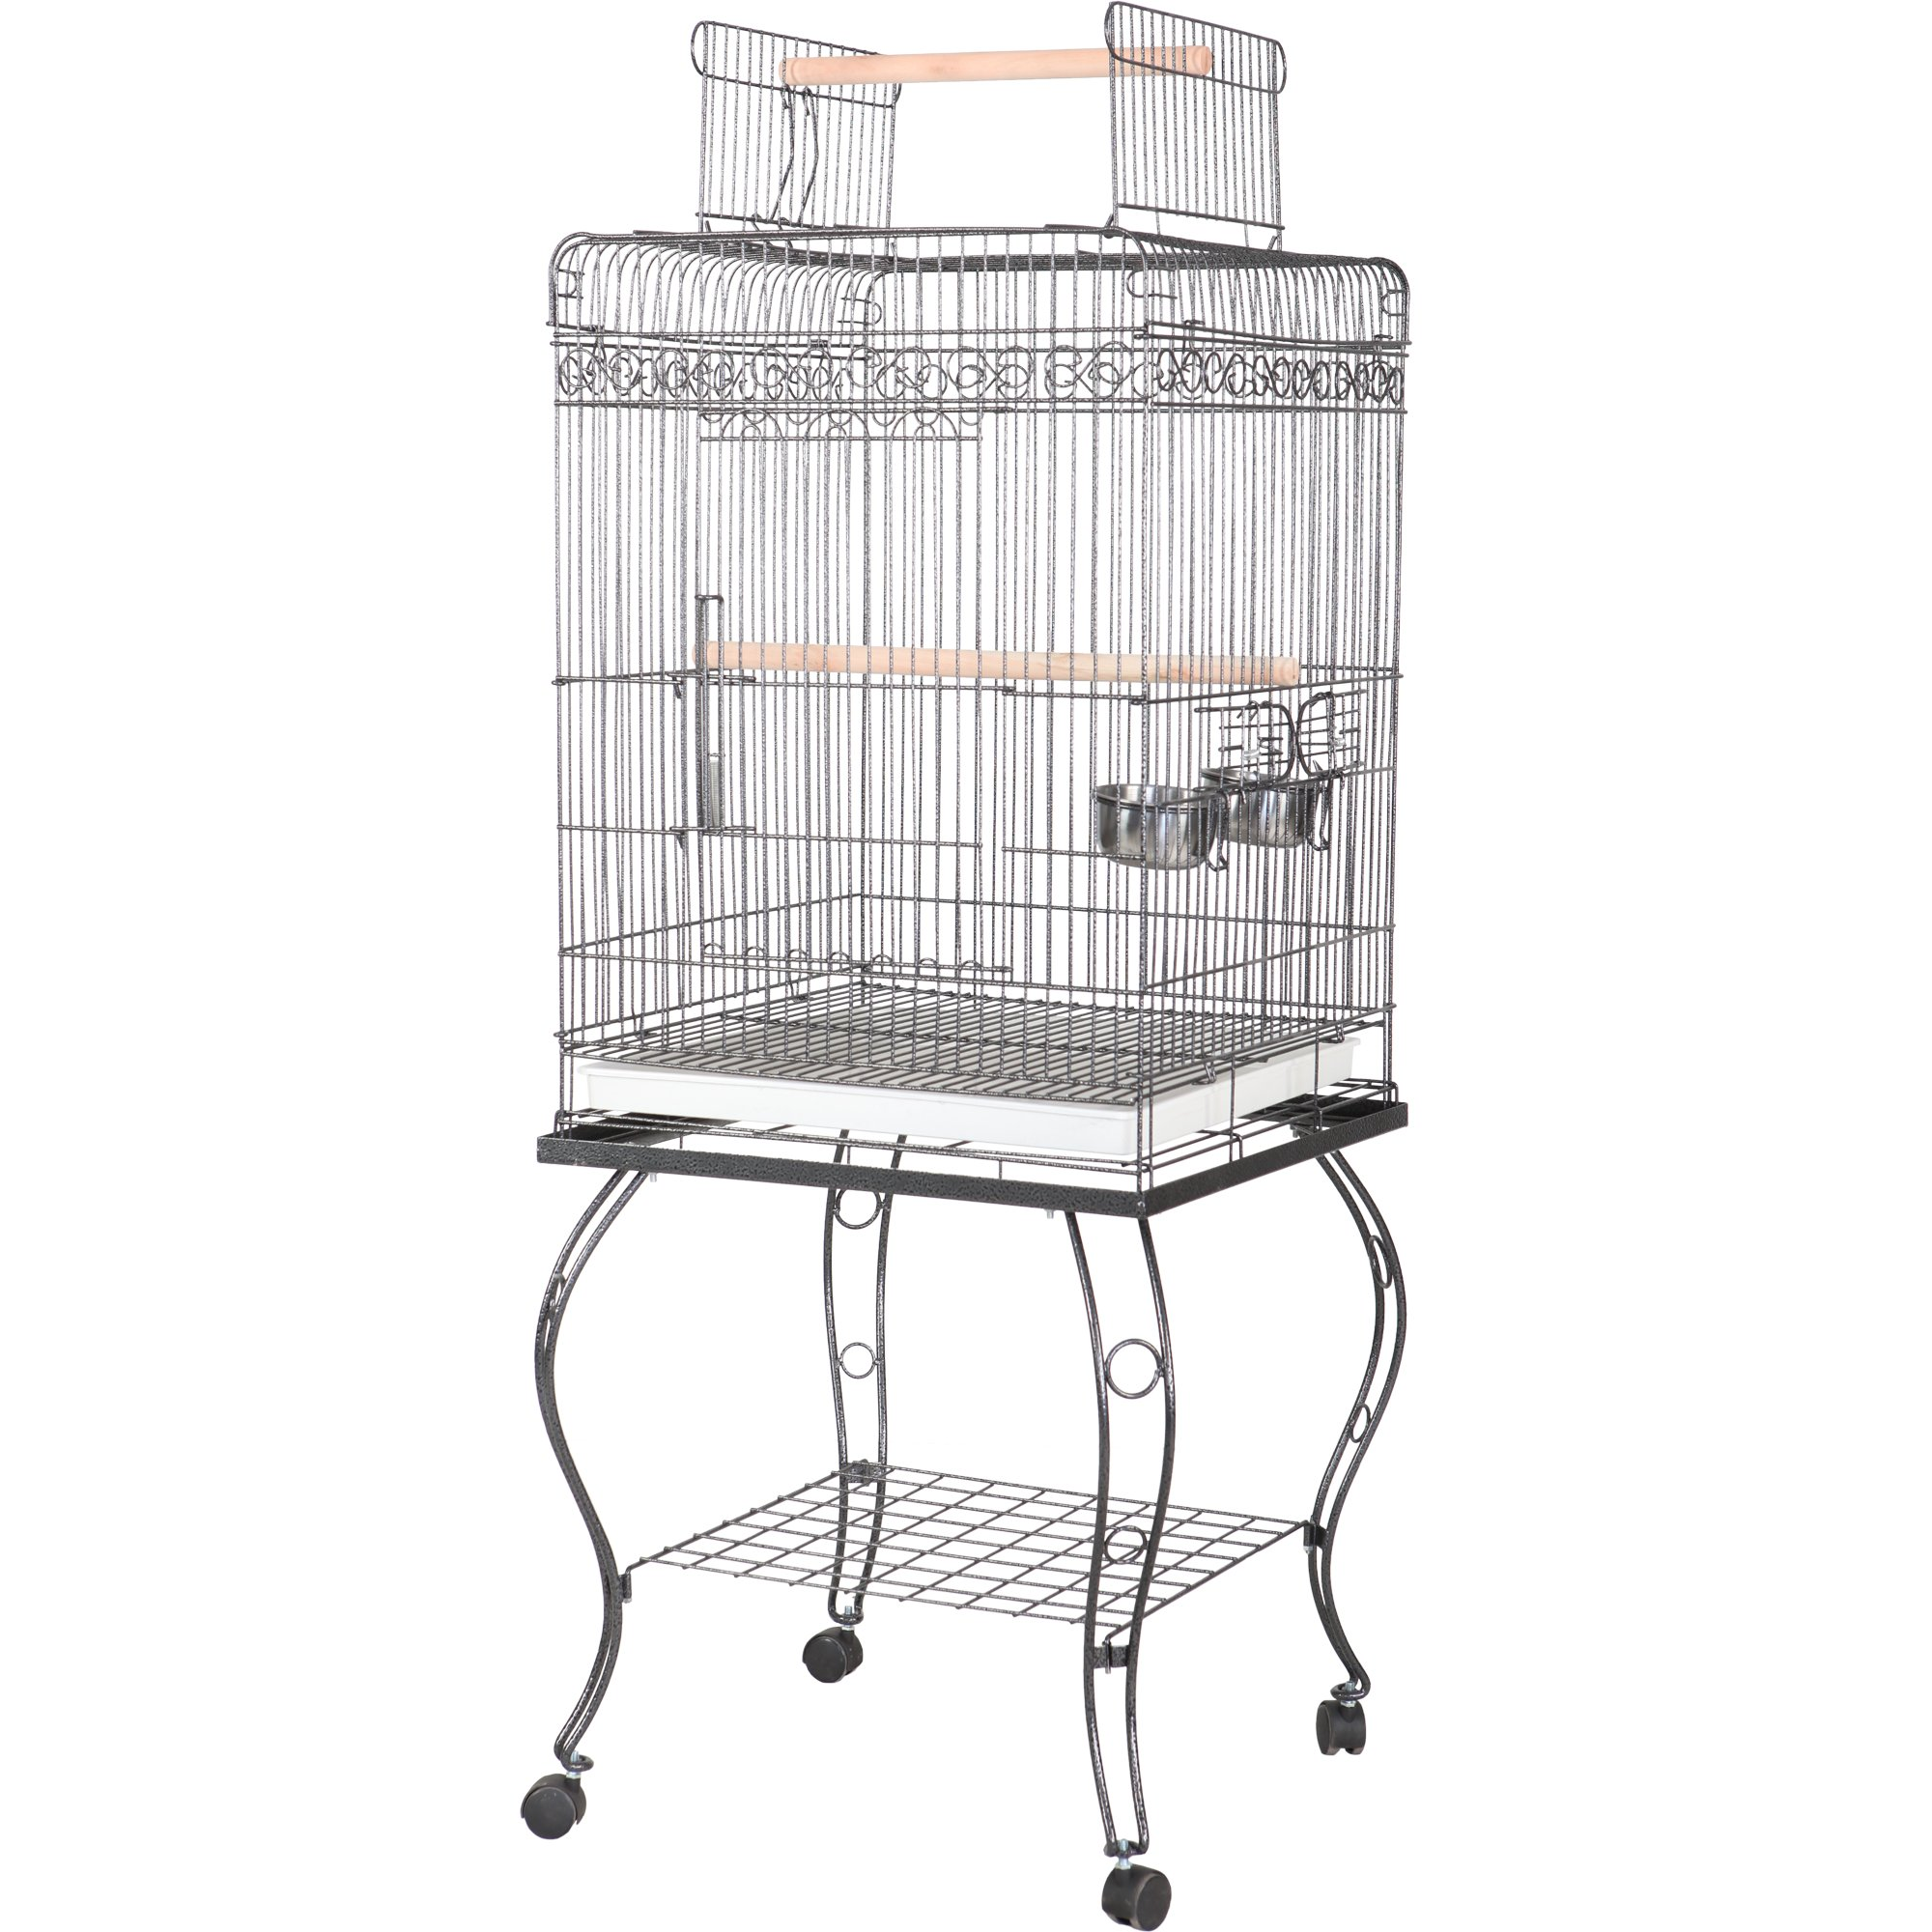 "A&E Cage Company 20"" X 20"" Play Top Bird Cage 